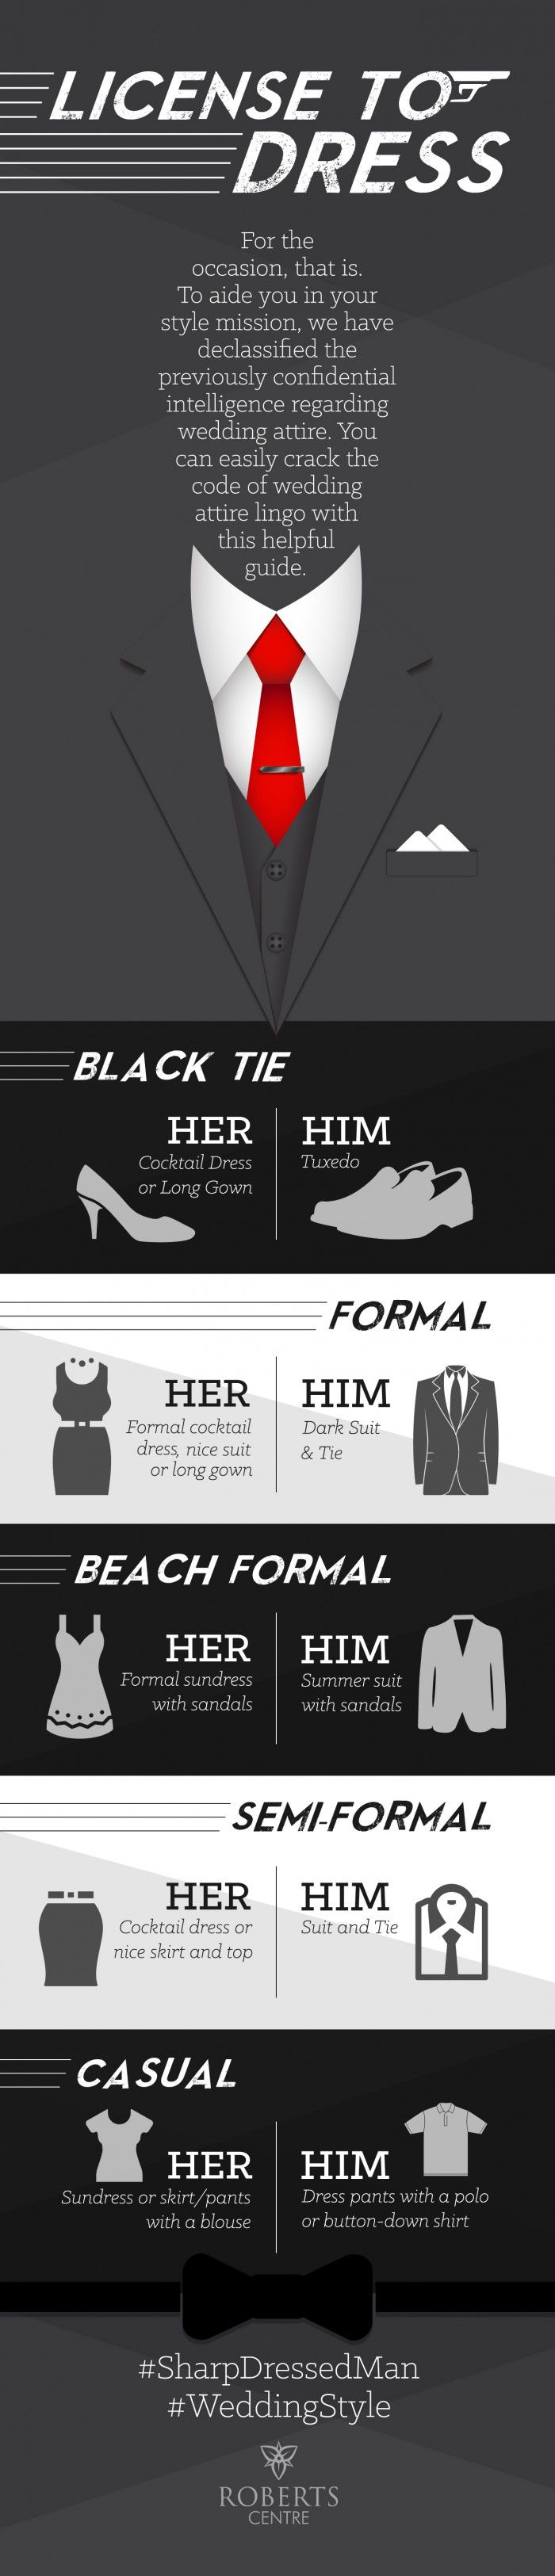 Deciphering Wedding Guest Dress Code - Wedding Guest Attire Tips